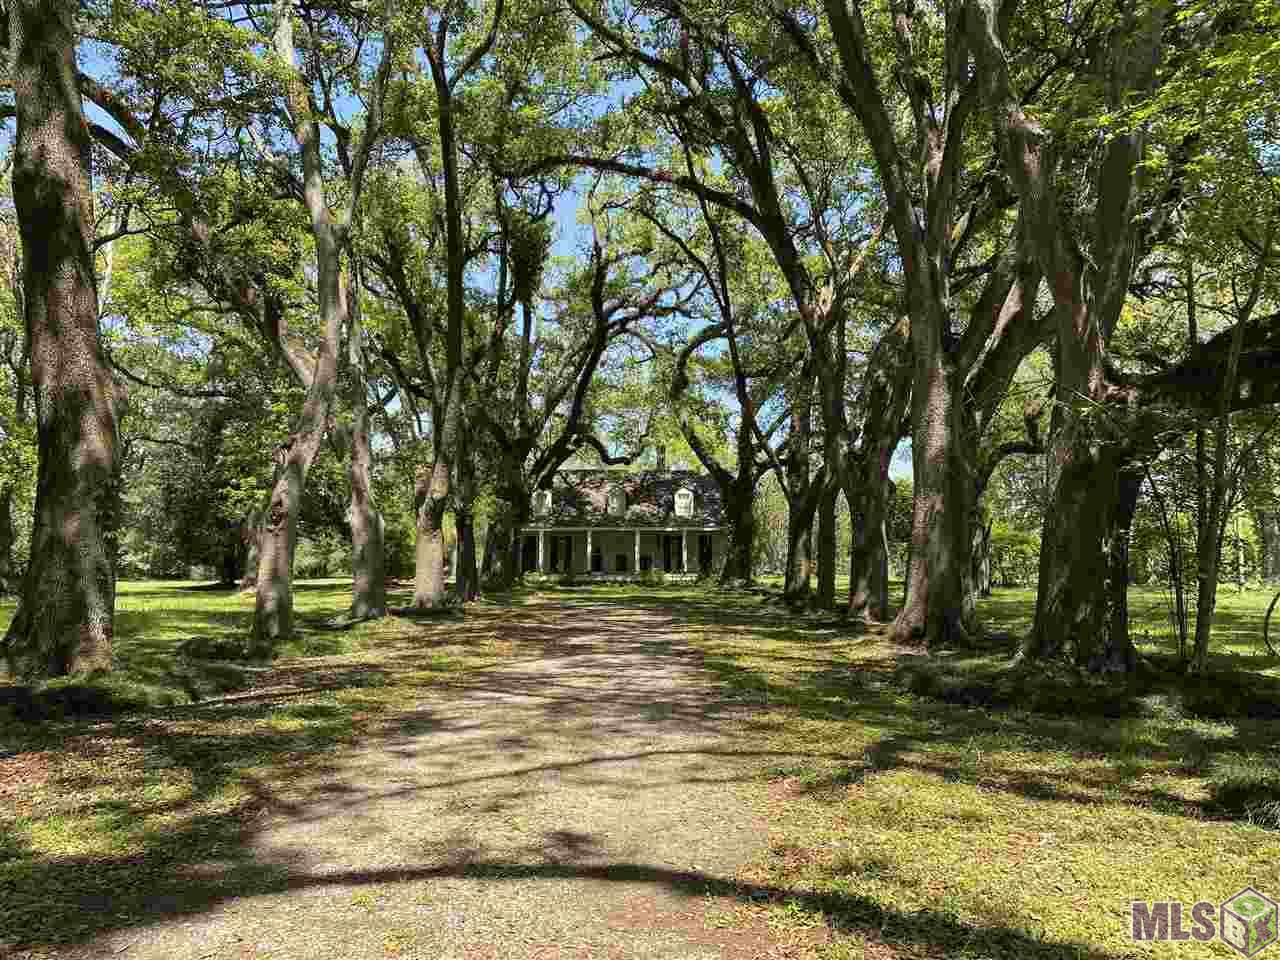 """Own a piece of Baton Rouge history on Highland Road just south of LSU! Previously known as """"The Oaks,"""" this 6.18 acre property presents the right buyer with a rare opportunity to acquire acreage with Centennial Oaks along the historic Highland Road corridor, not far from the south gates of LSU.  Gorgeous live oaks shade the driveway leading up to the home which has been owned by the Duplantier family since the early 1800's. The live oaks provide a beautiful frame for the 4,034 square foot, two-story home, built more than 170 years ago. The elevated front porch has operating shutters separated by three tall windows in the center. Six square columns stand sentinel below three dormers on the roof. Formal dining room. The home's original woodburning fireplace is below the original brick chimney in the downstairs living room, while the large kitchen had been updated several years ago with a Chambers electric cooktop and double wall ovens. The kitchen also has an abundance of cabinetry, dishwasher and double sink below large windows that view the side yard. The master suite has a walk-in closet and sitting area, while an additional two bedrooms with ceiling fans and a hall bath are located upstairs. The home also has a double garage and an inside laundry room. This is truly a rare opportunity to obtain one of Baton Rouge's most familiar landmarks on Highland Road. The bonus is six-plus acres along one of the most desirable residential locations in the city. Call today if you'd like to see this amazing, historical Highland Road property!"""